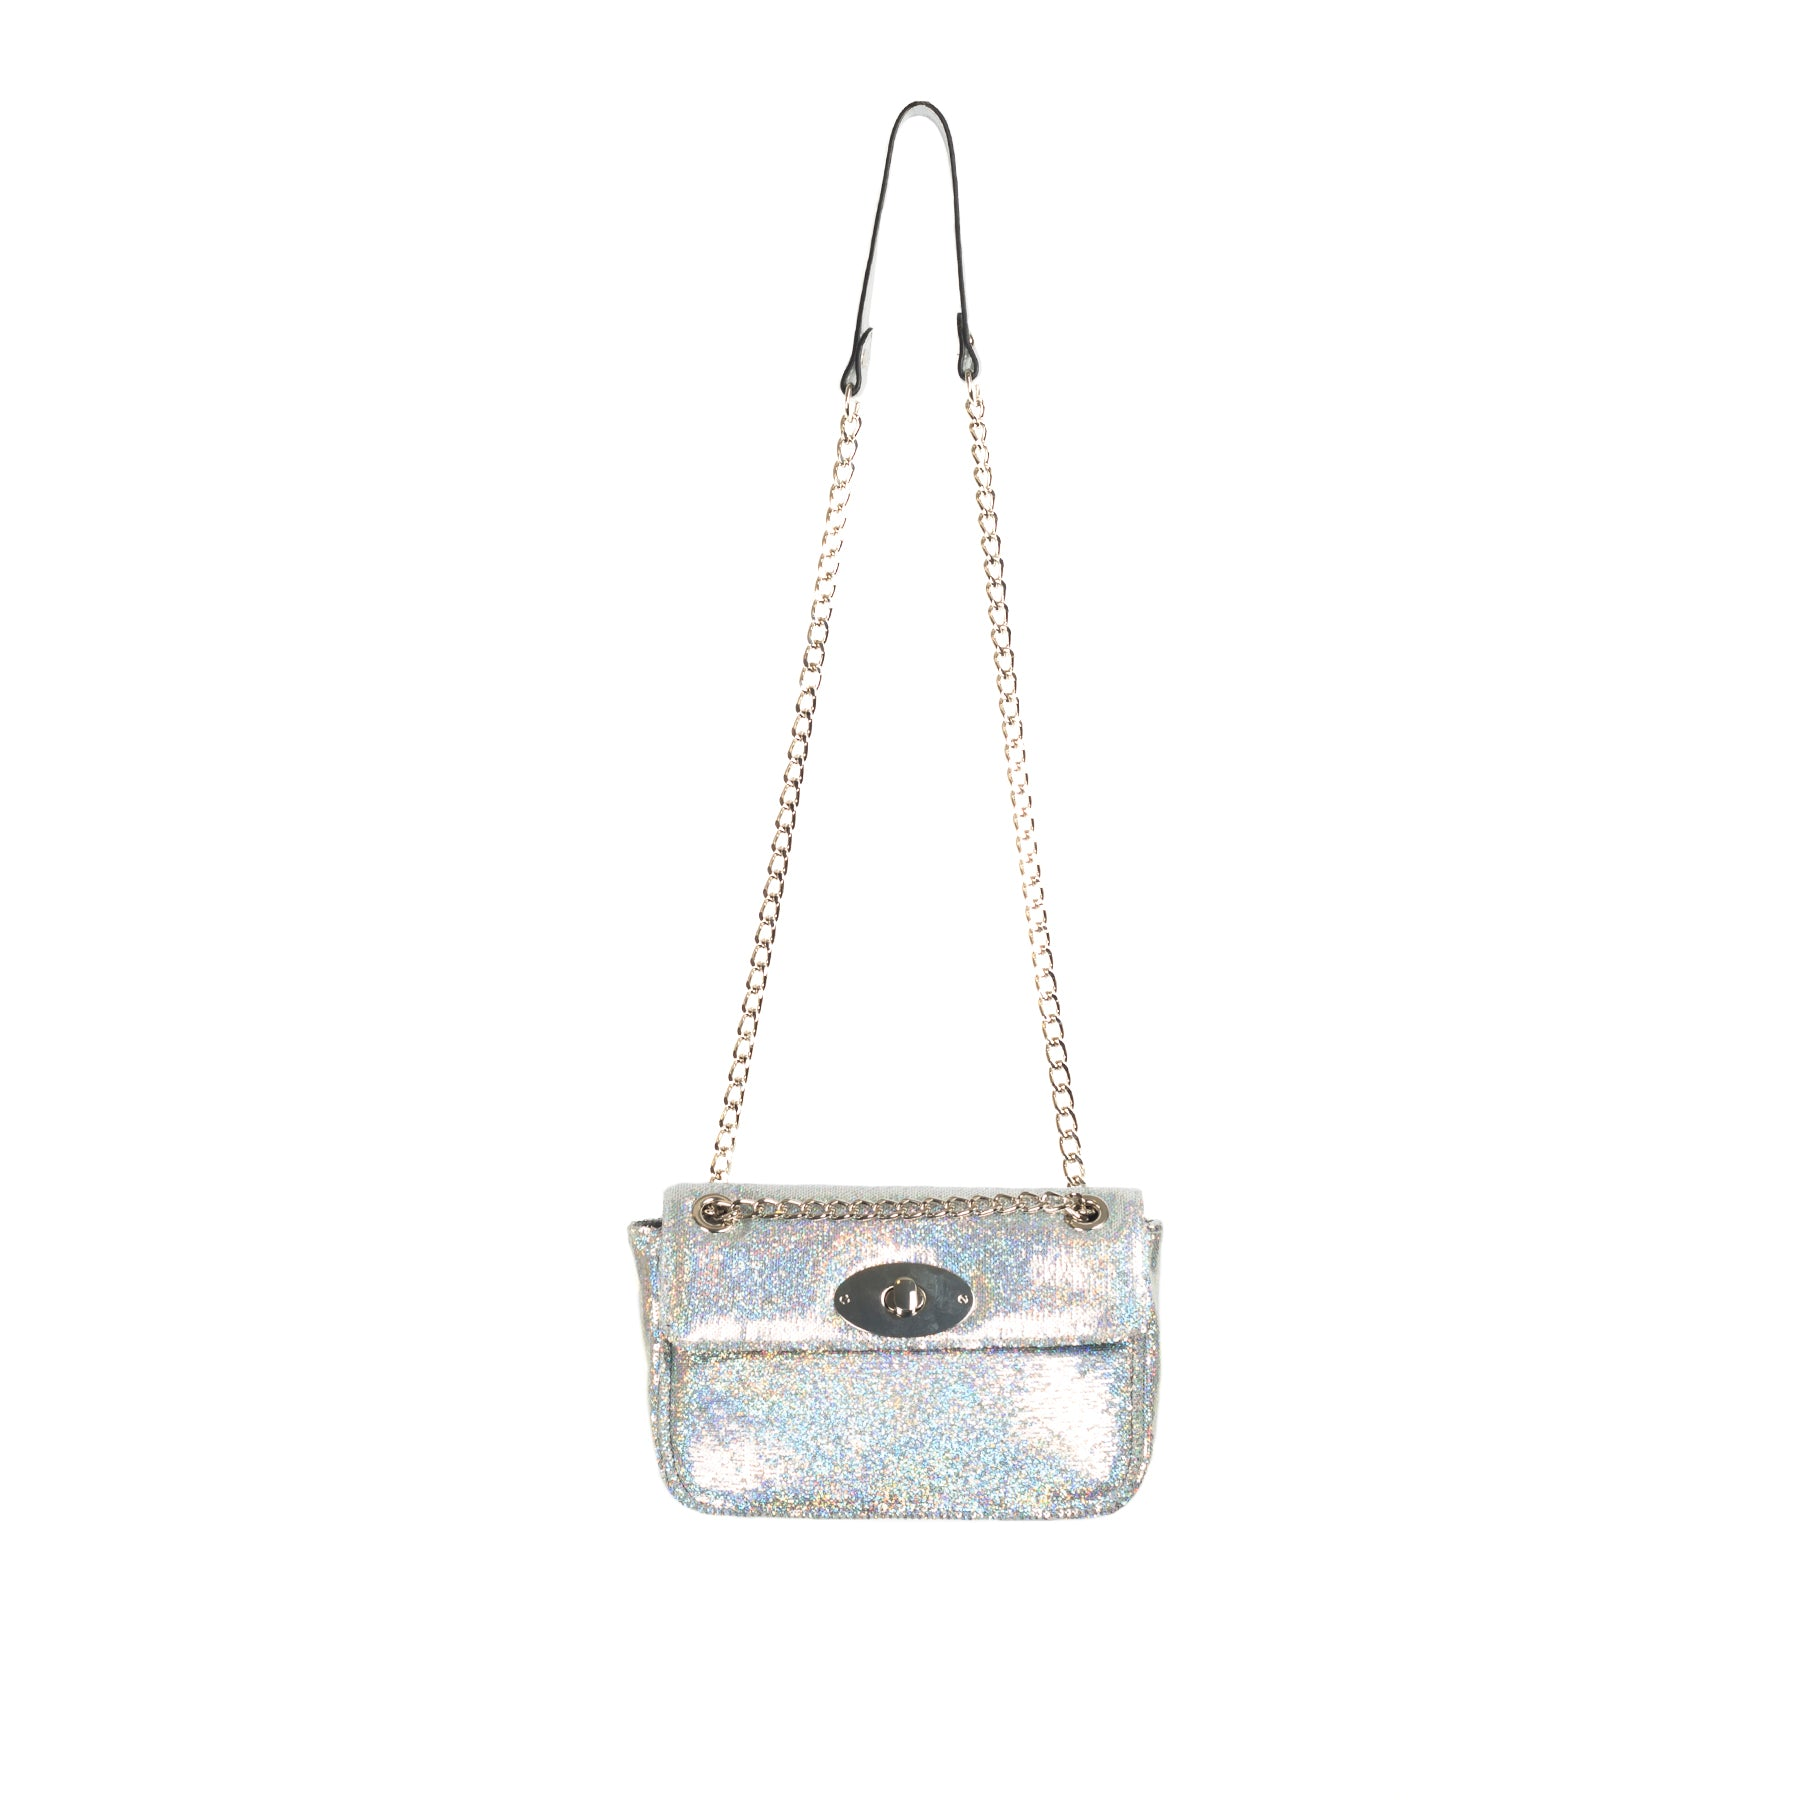 Juliet Grey Brilliant Leather Shoulder Bags